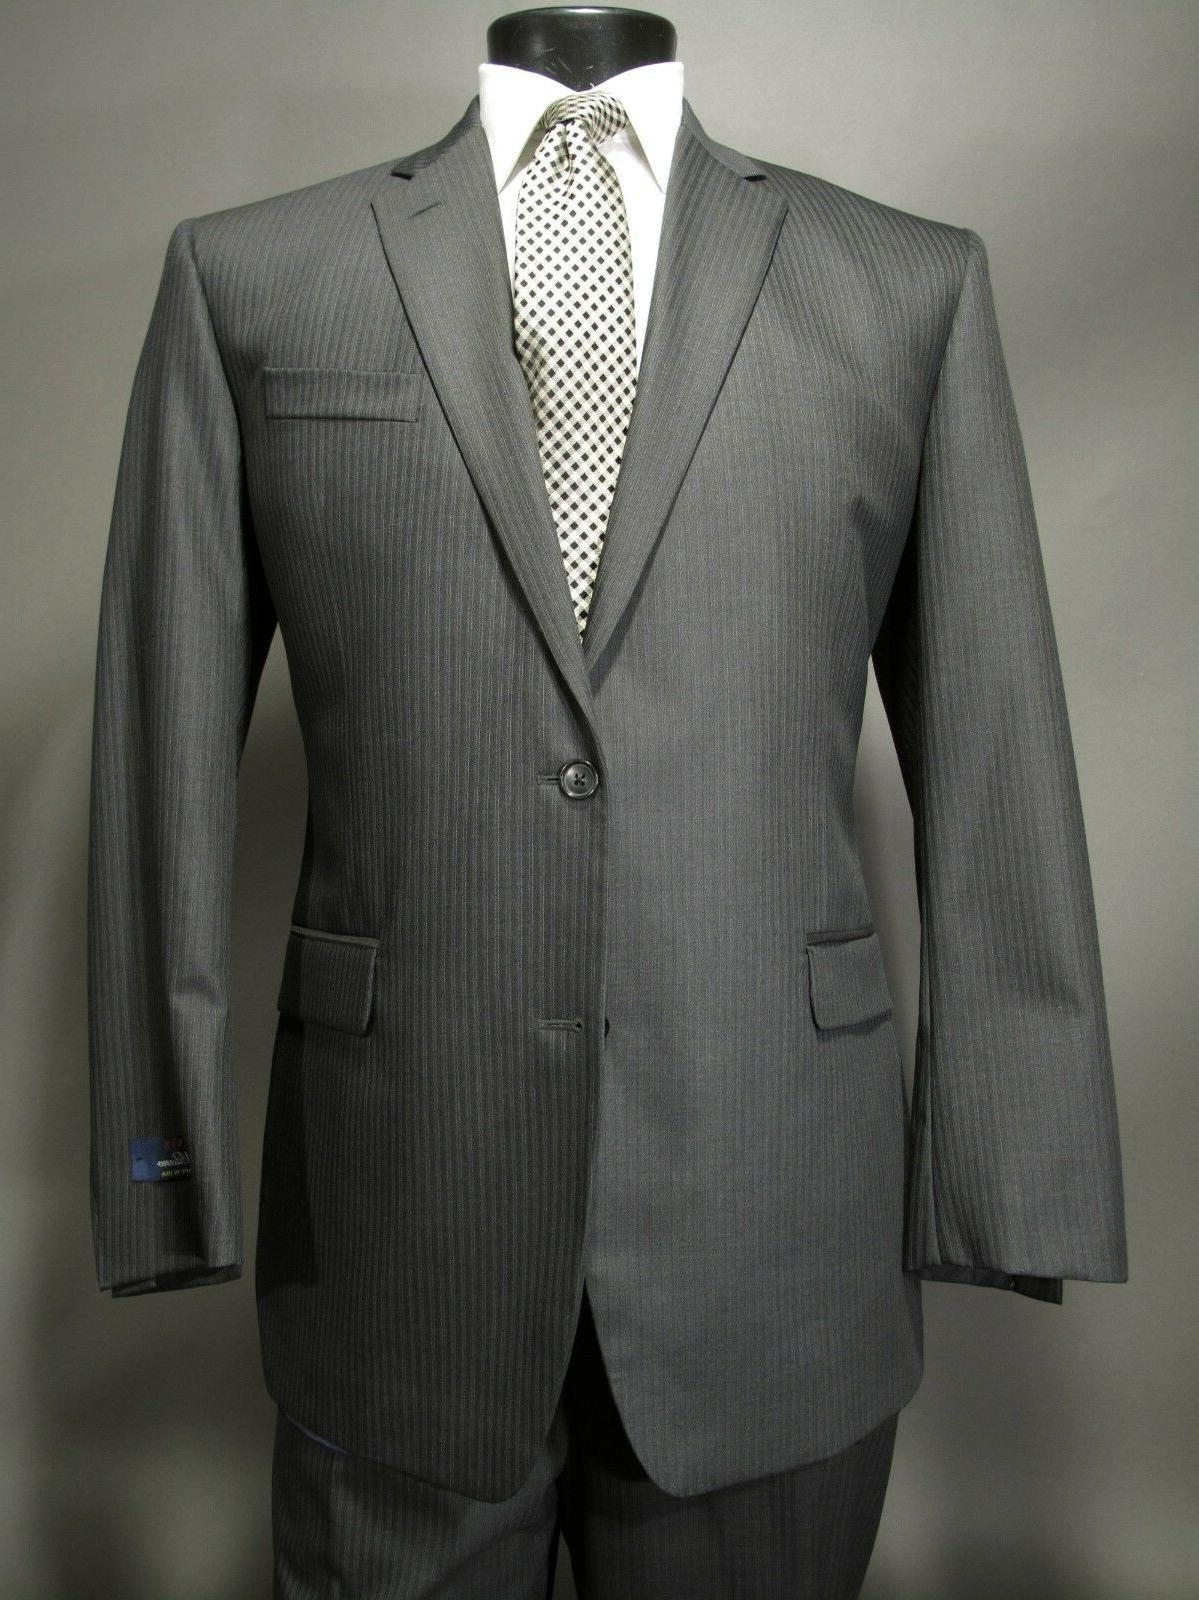 New Milano Suit L Charcoal Gray Double